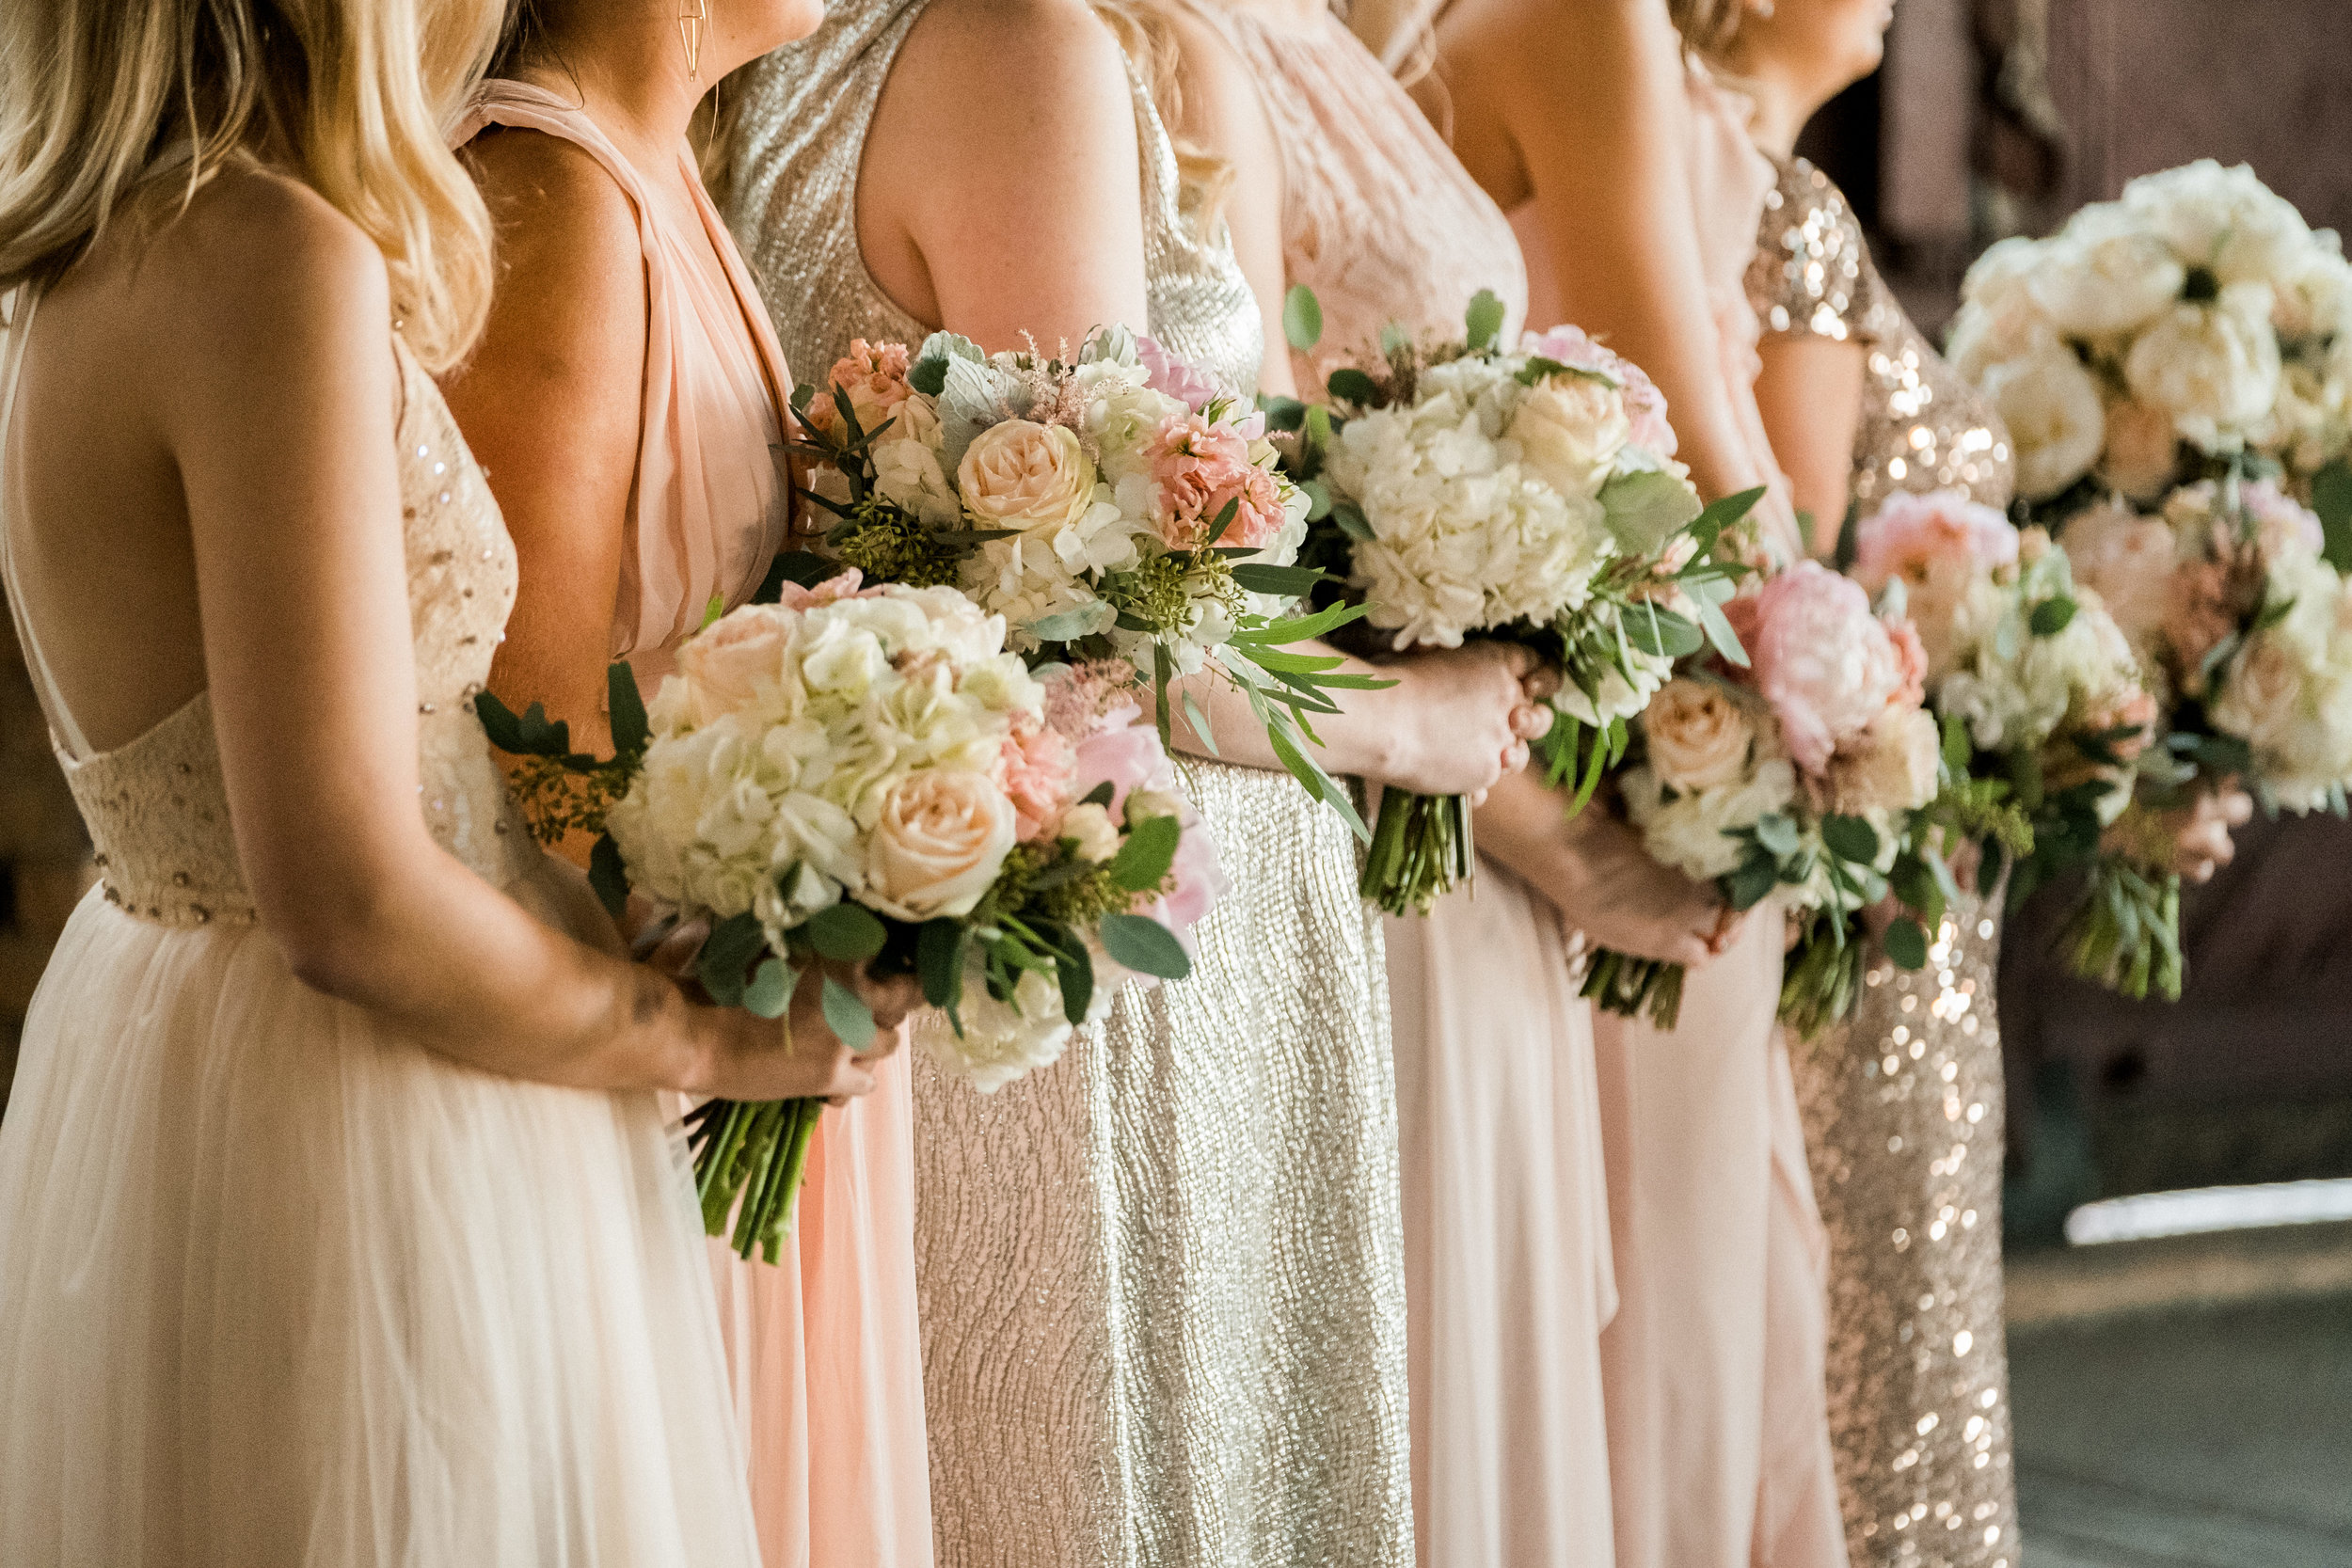 bridesmaids bouquets during the wedding ceremony